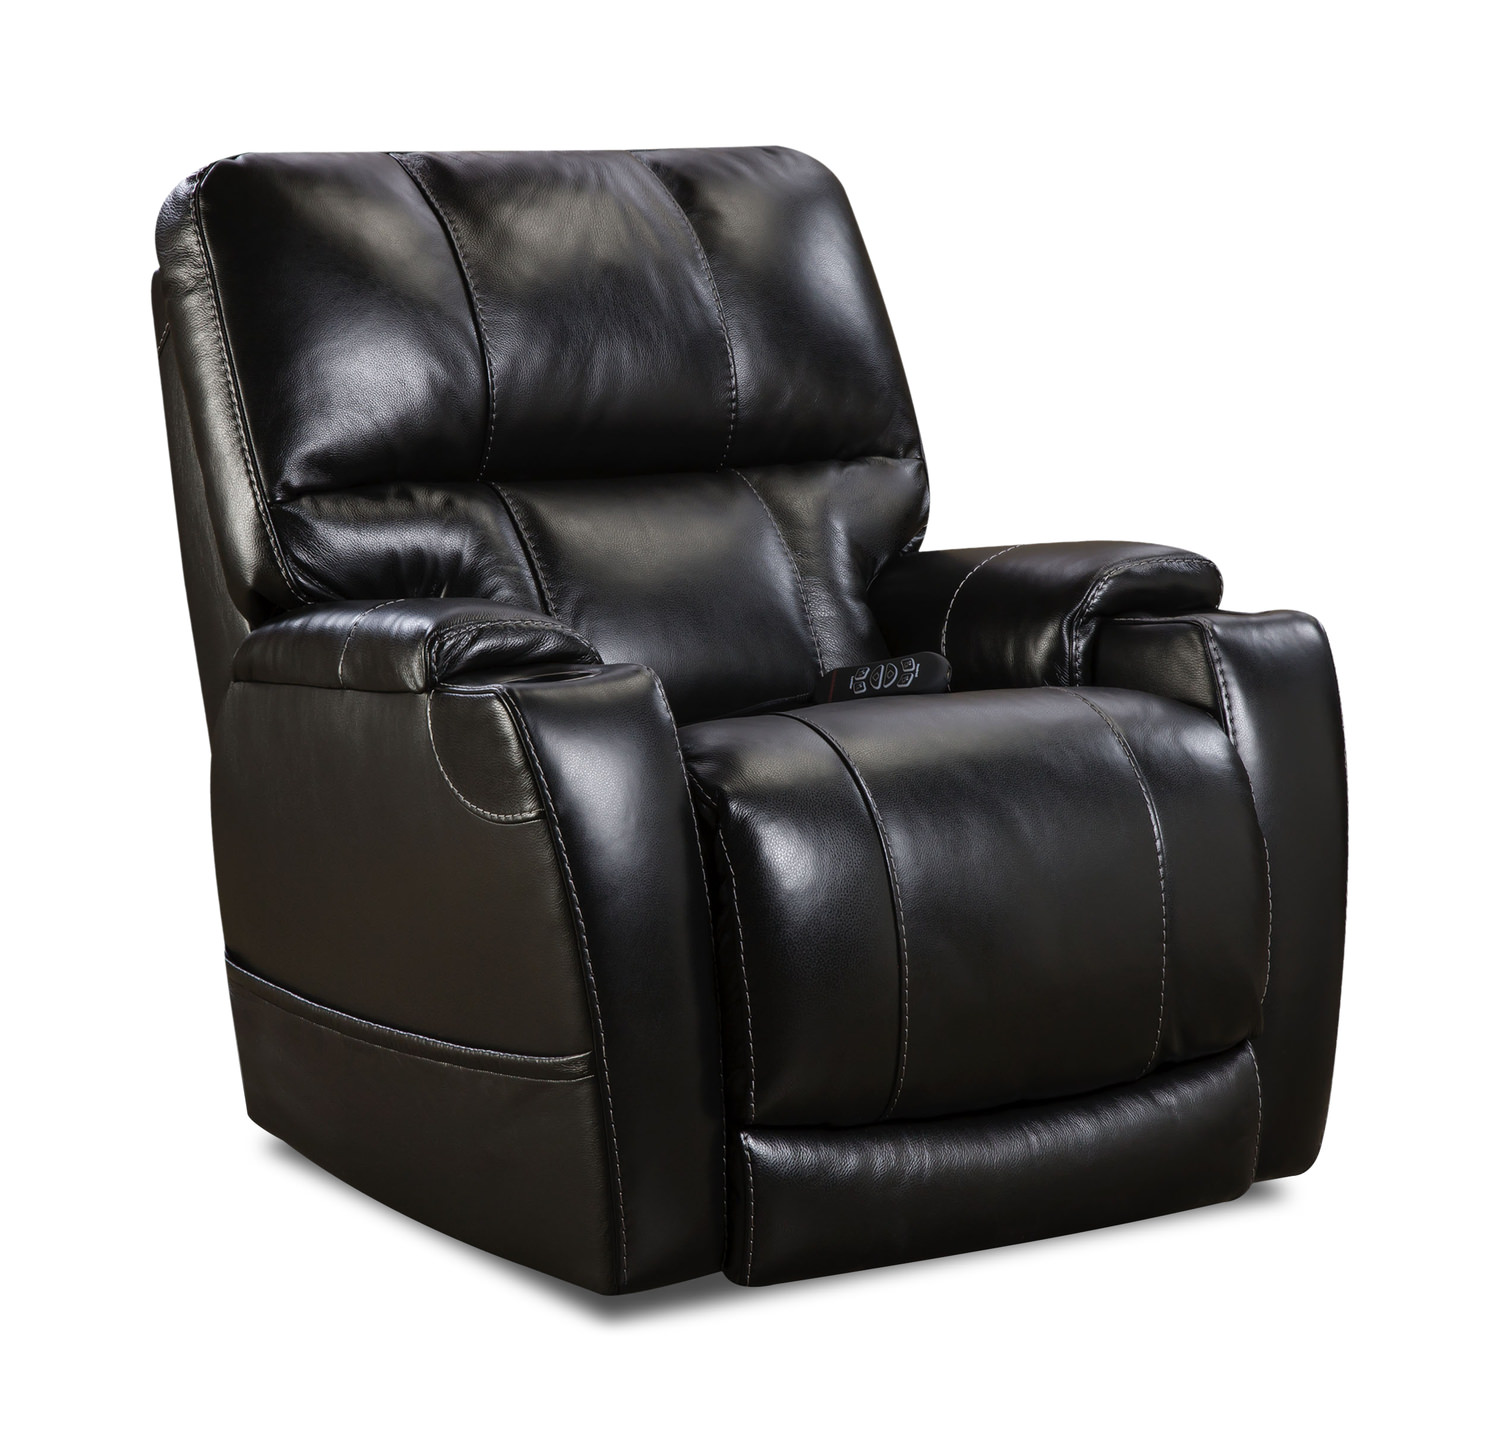 Stupendous Weston Leather Power Home Theater Recliner Customarchery Wood Chair Design Ideas Customarcherynet